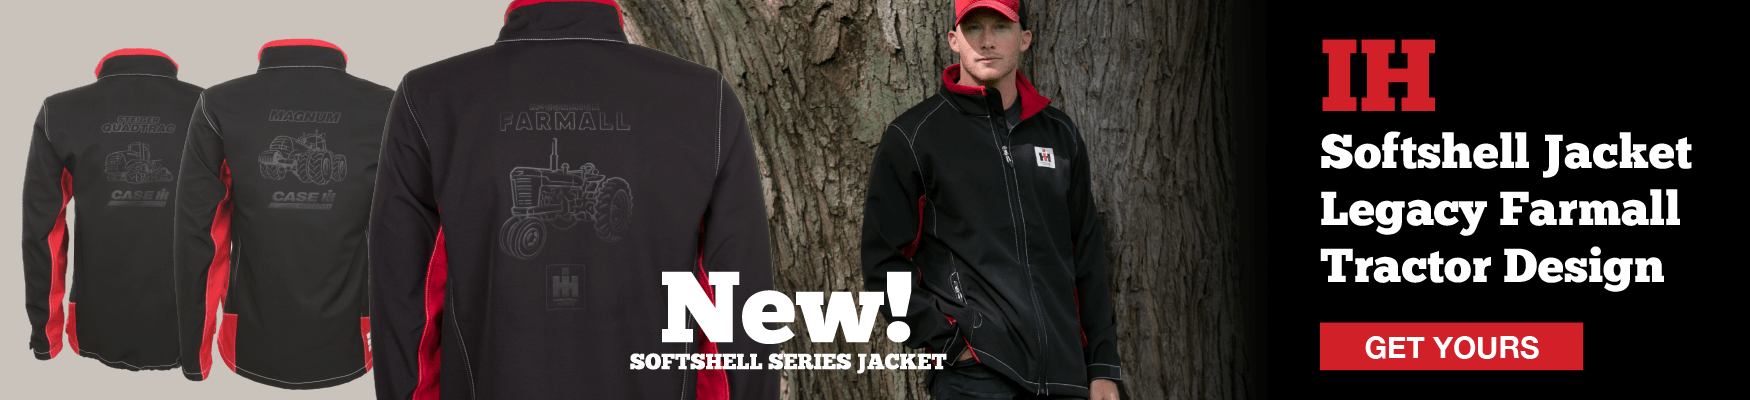 IH Softshell Jacket Farmall Design